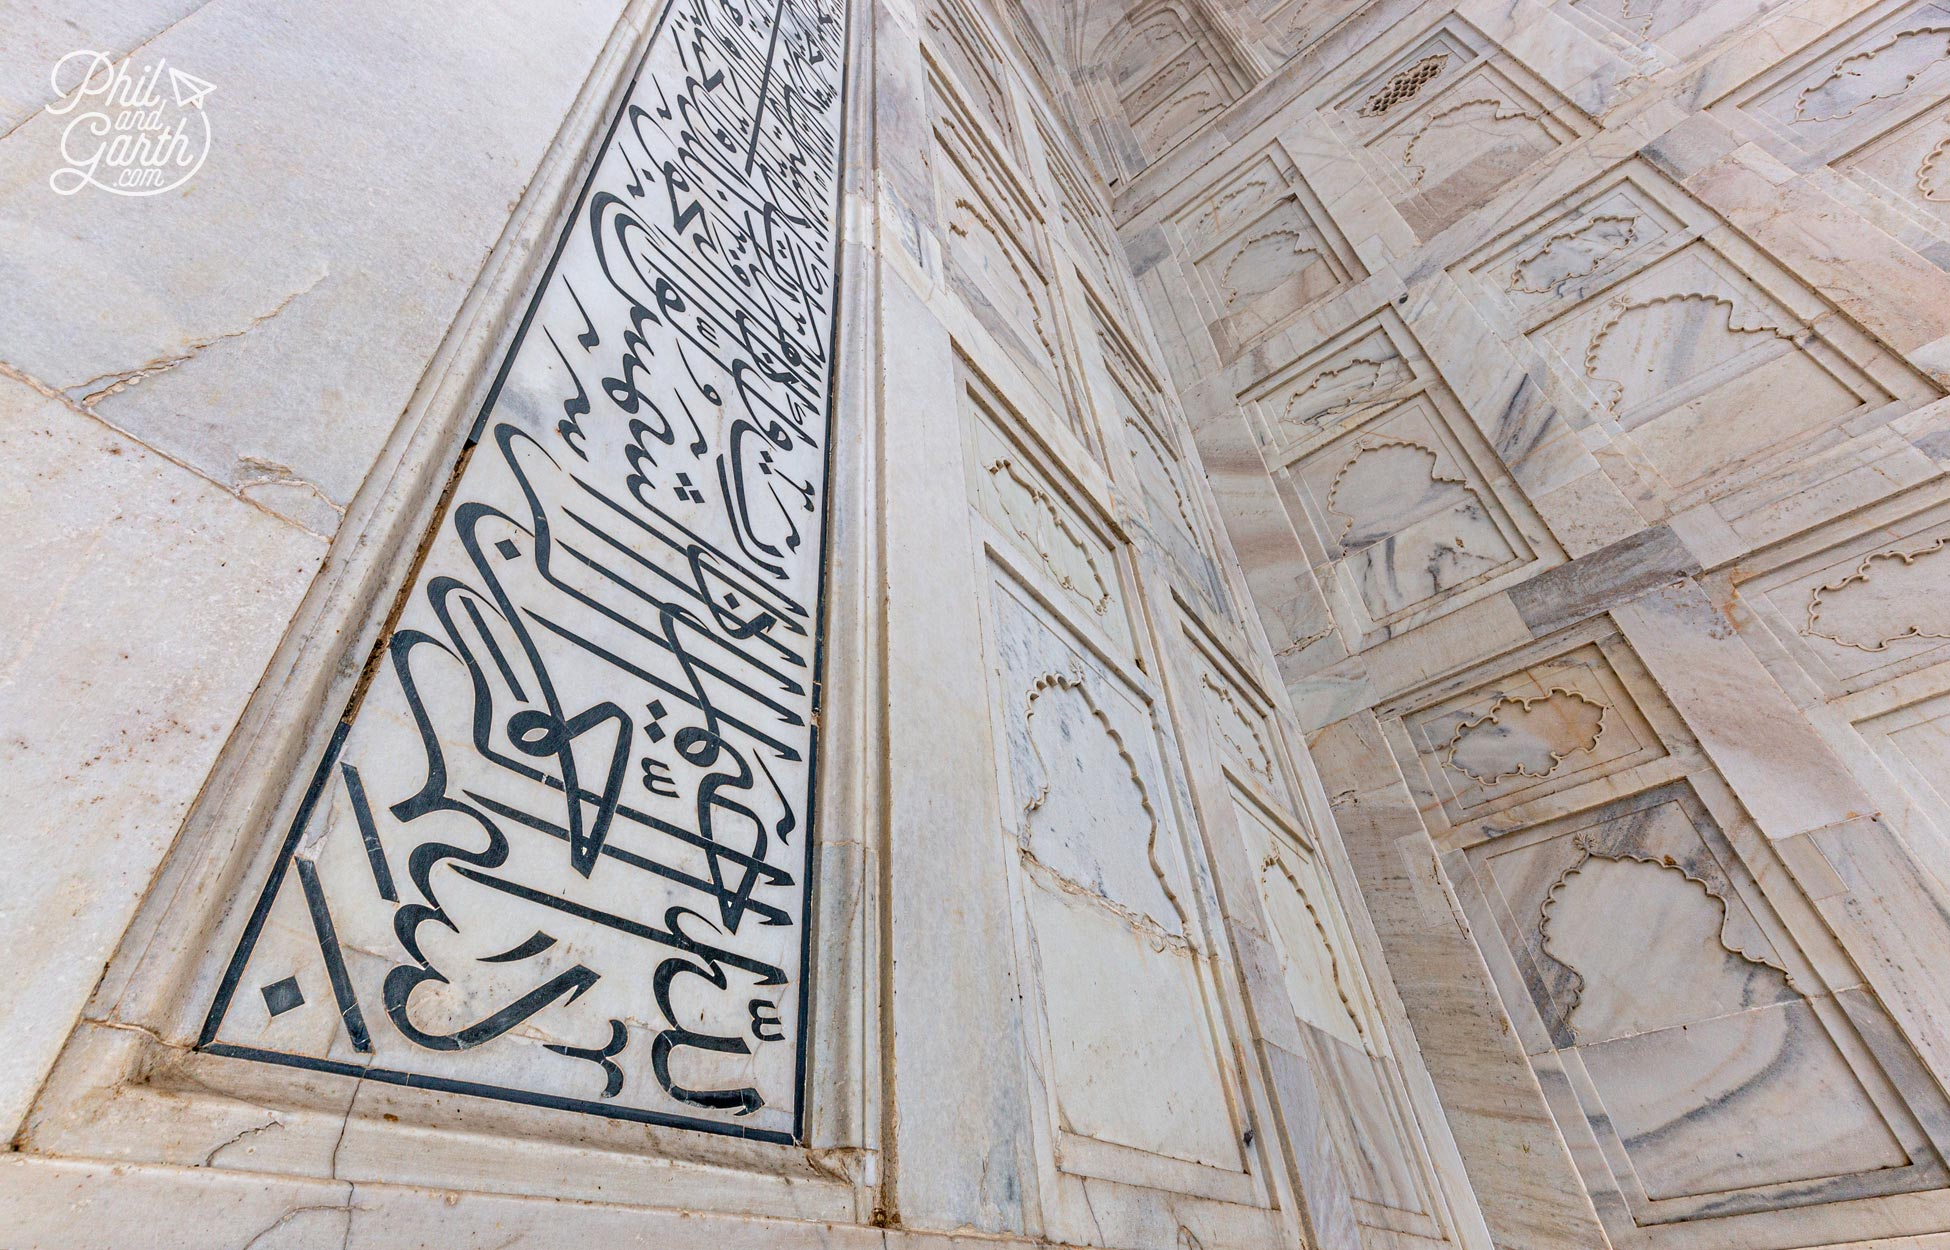 The Arabic calligraphy surrounding the entrance is a verse from the Quran